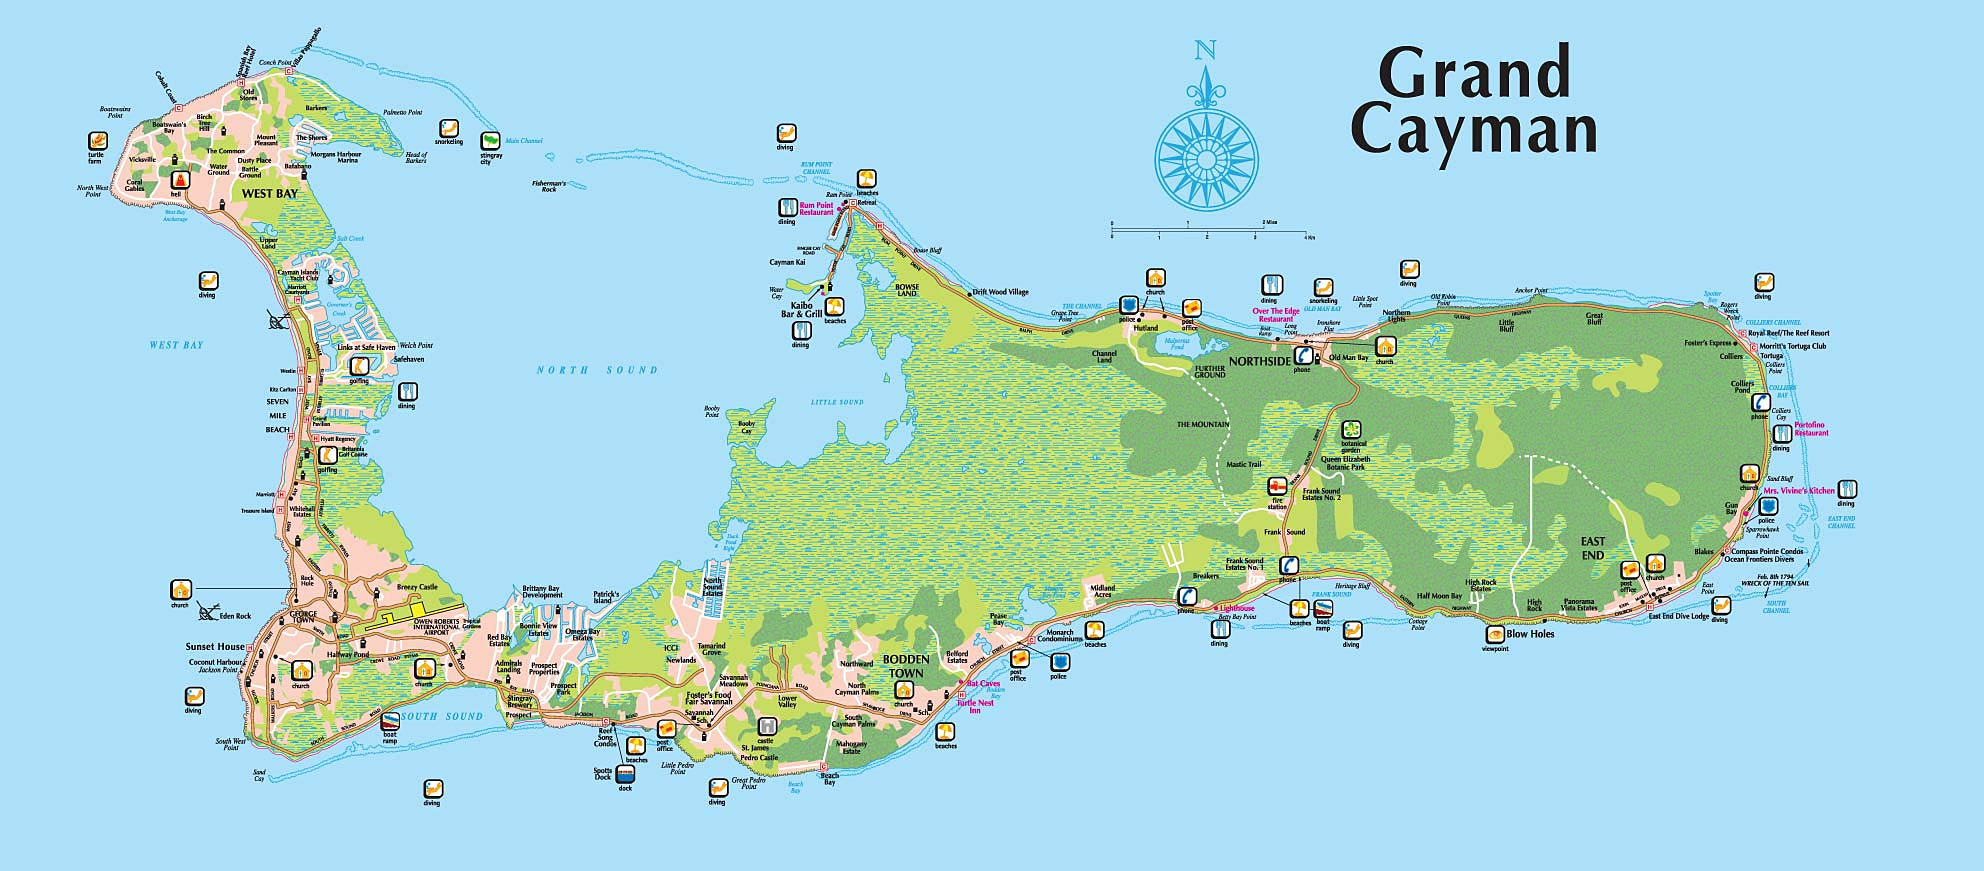 Grand Cayman Tourist Map  mappery